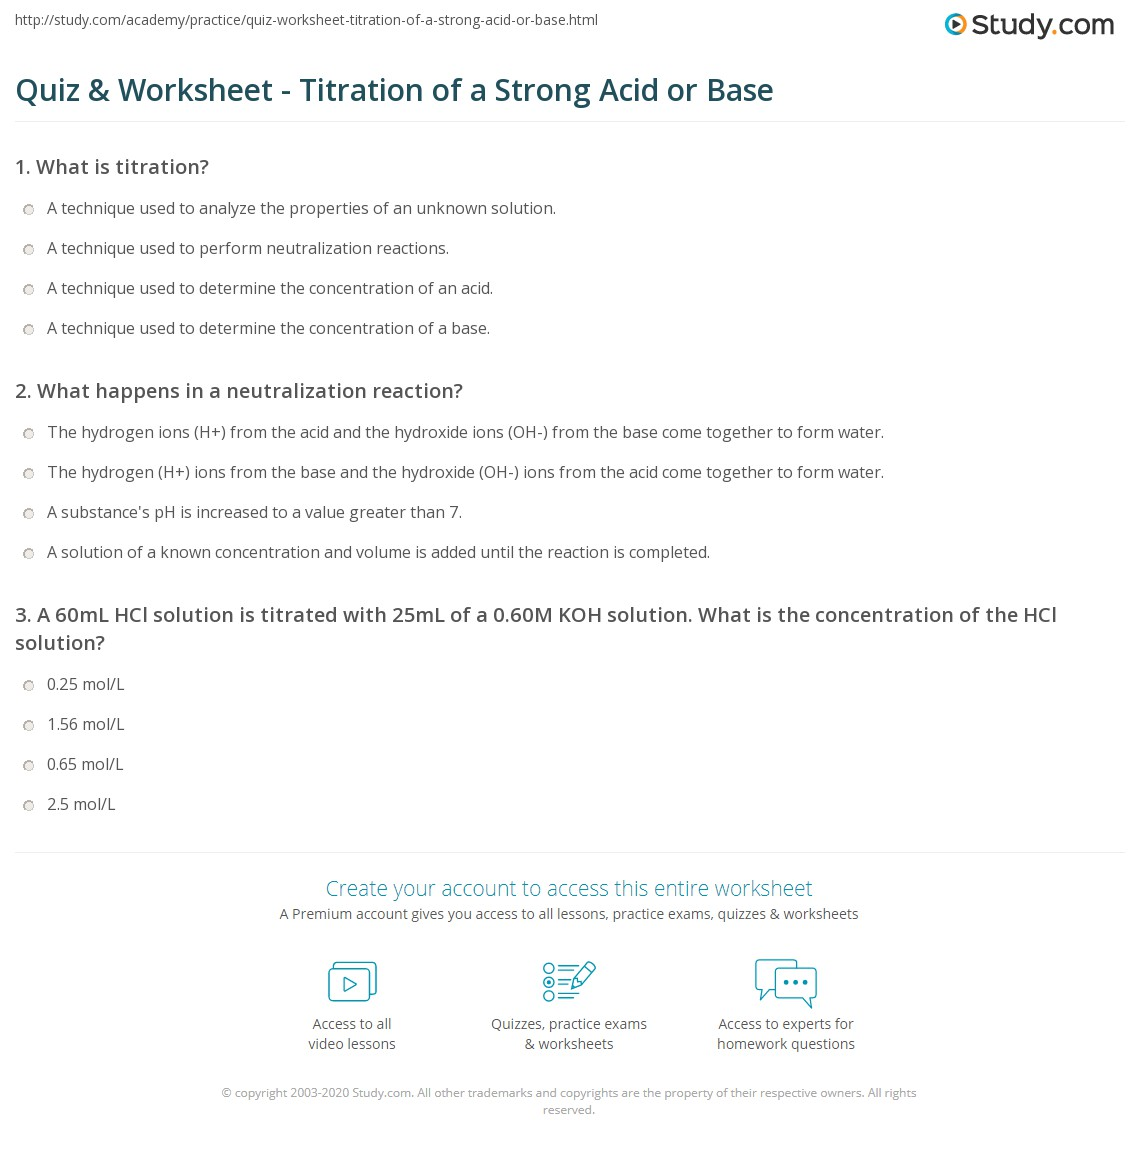 Quiz Worksheet Titration Of A Strong Acid Or Base Study